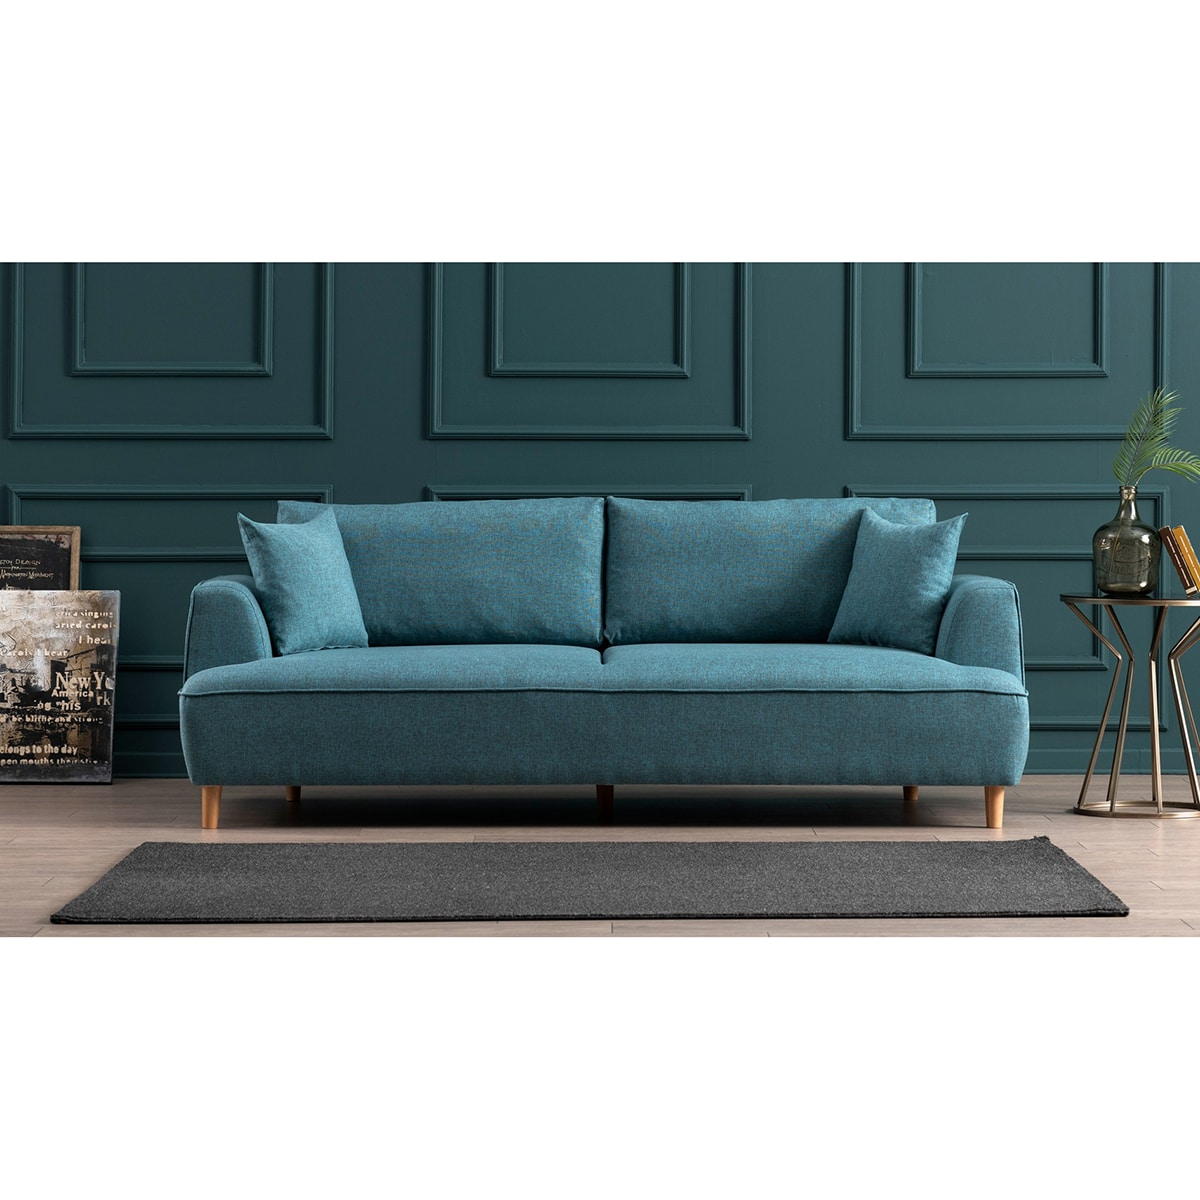 canap felix bleu turquoise atelier del sofa en offre. Black Bedroom Furniture Sets. Home Design Ideas